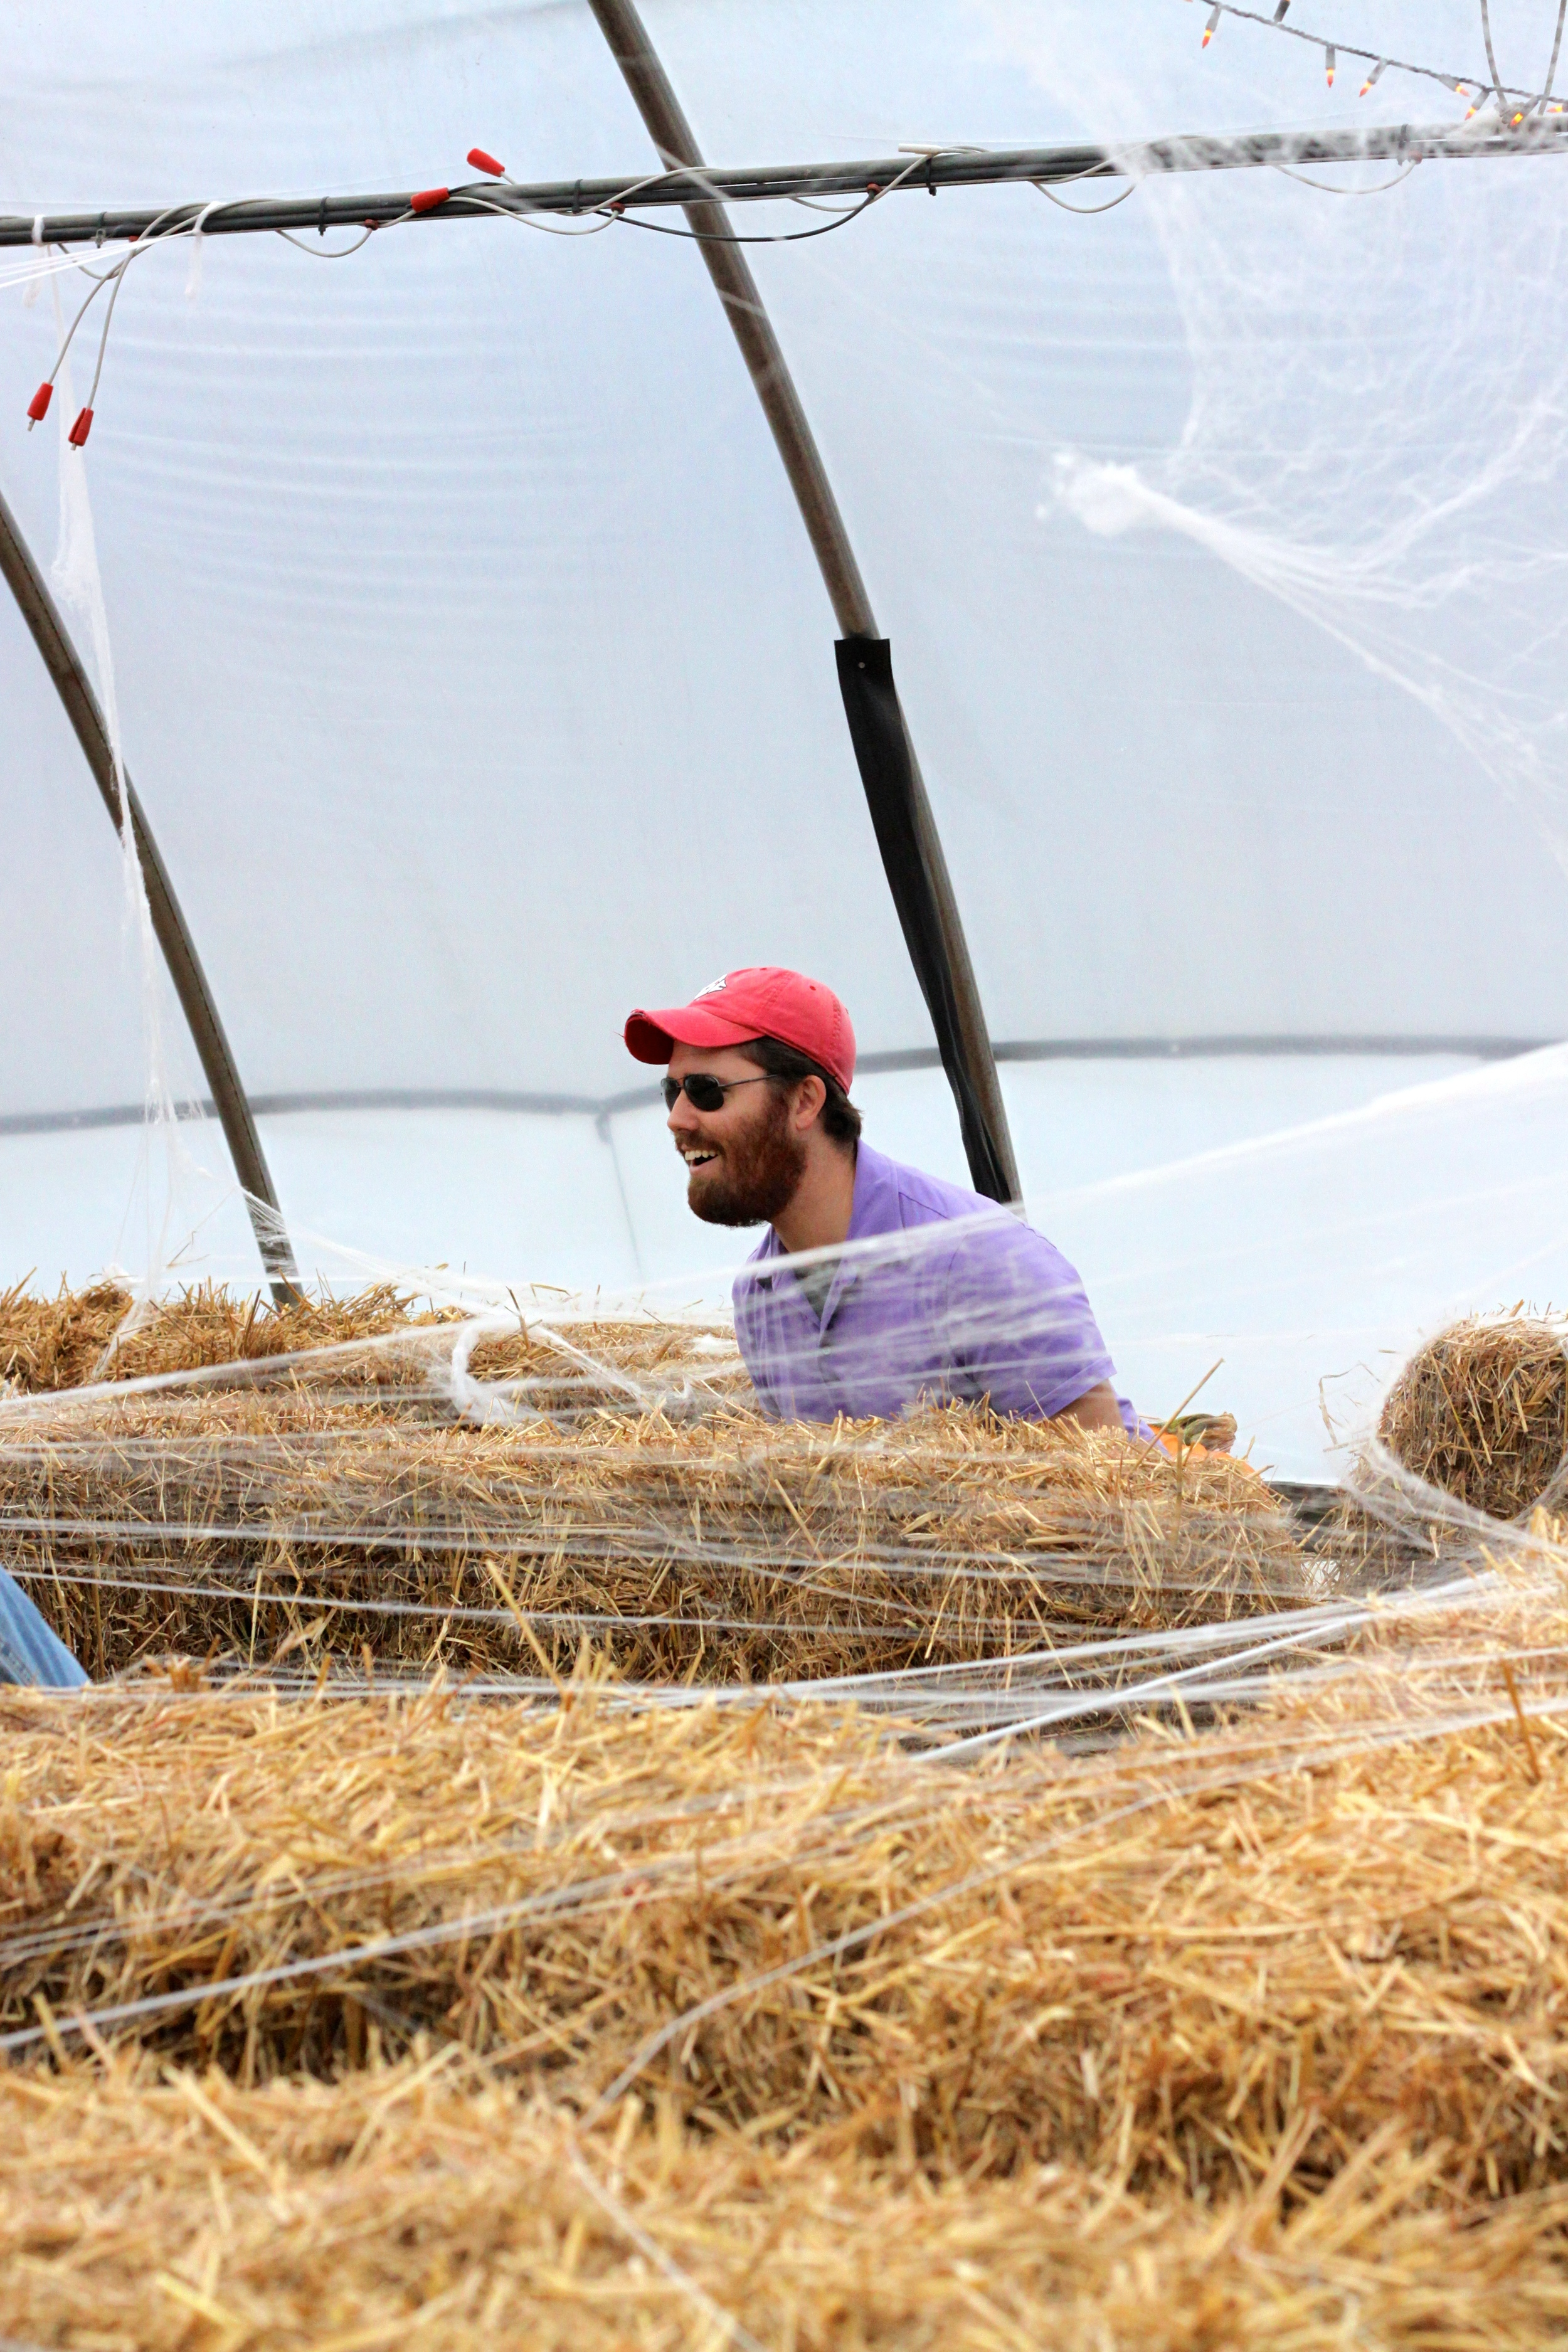 it took John 3 hours to find his way out of this kids hay maze ;)